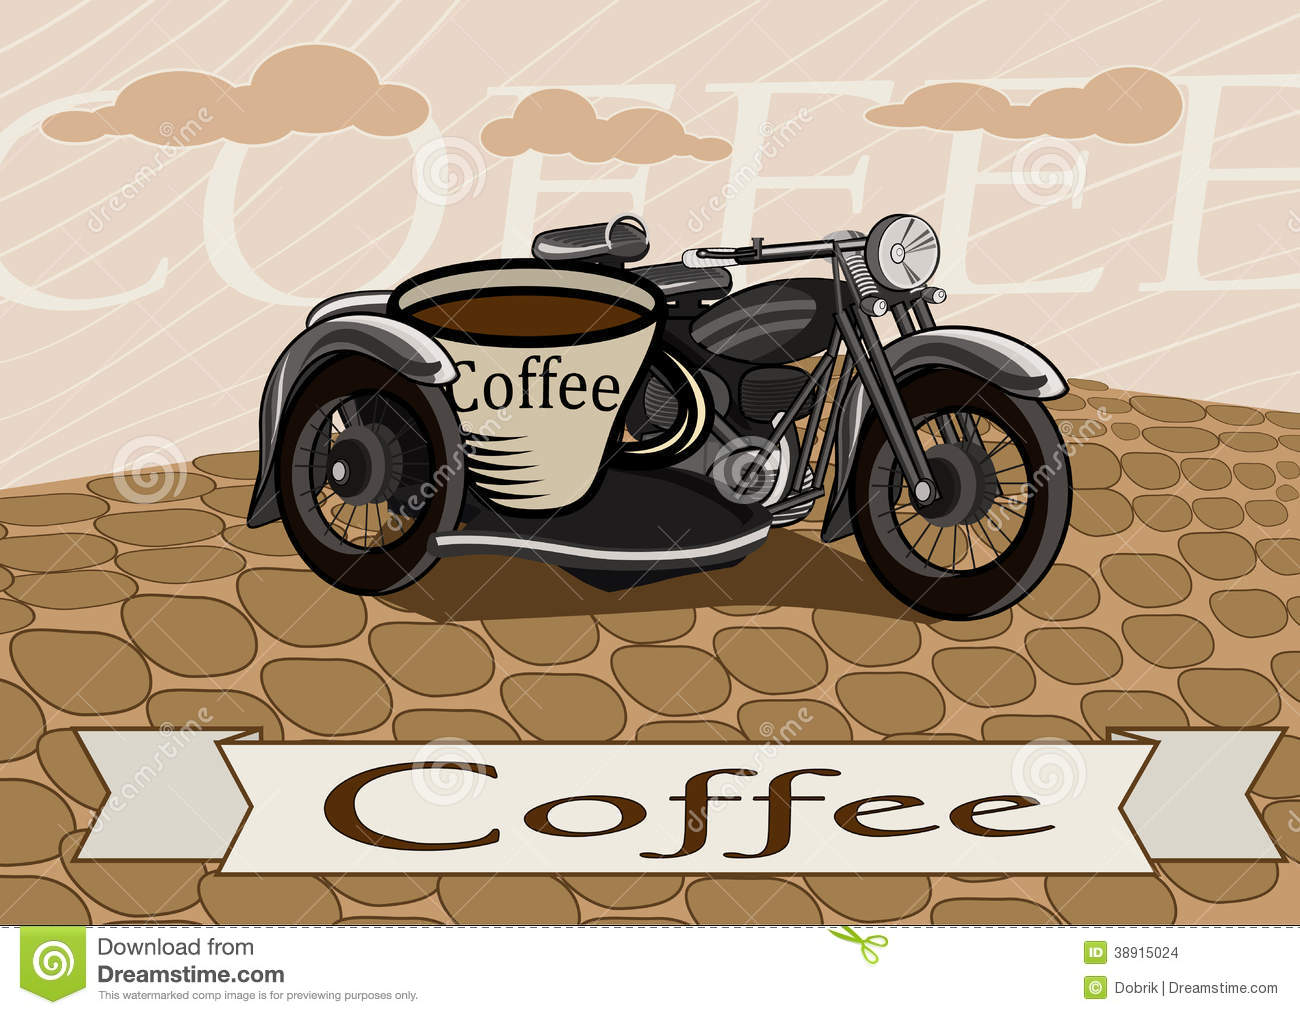 retro-banner-cup-coffee-motorcycle-resta